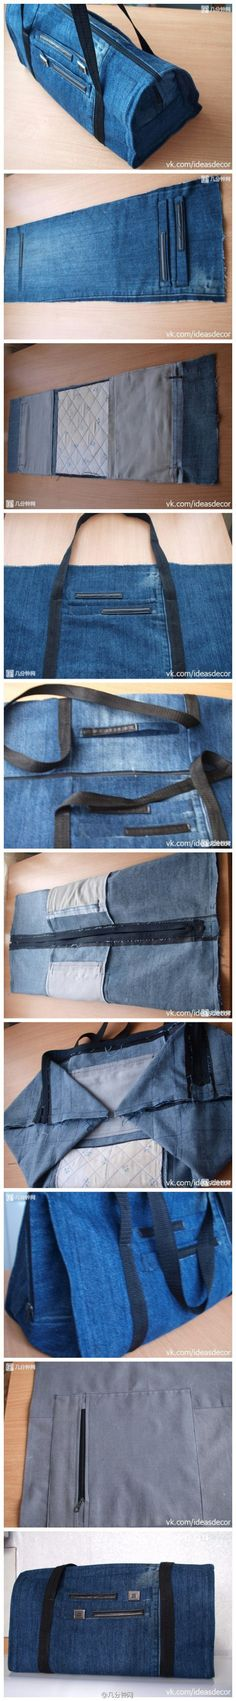 Several bags made from denim.